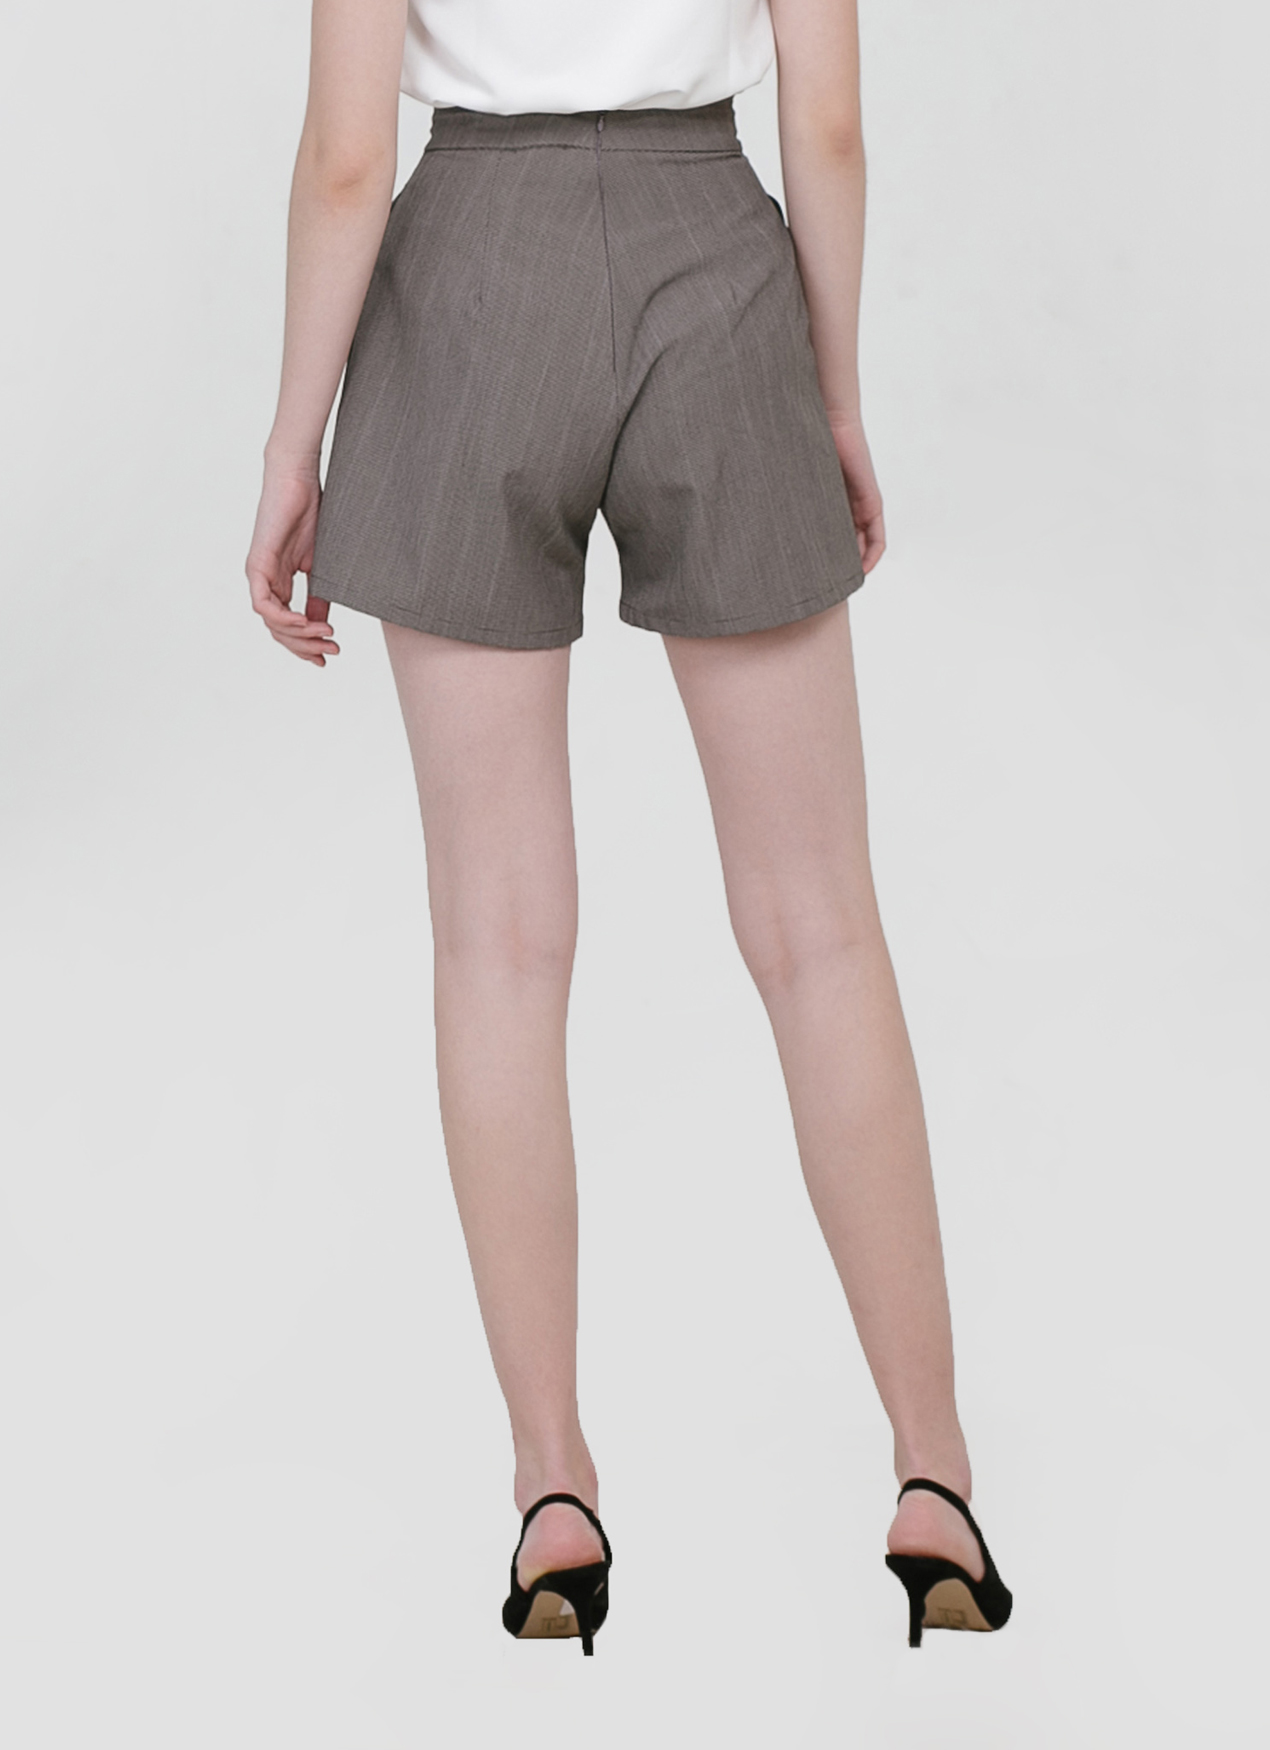 CLOTH INC Bonnie Shorts - Gray Plaid